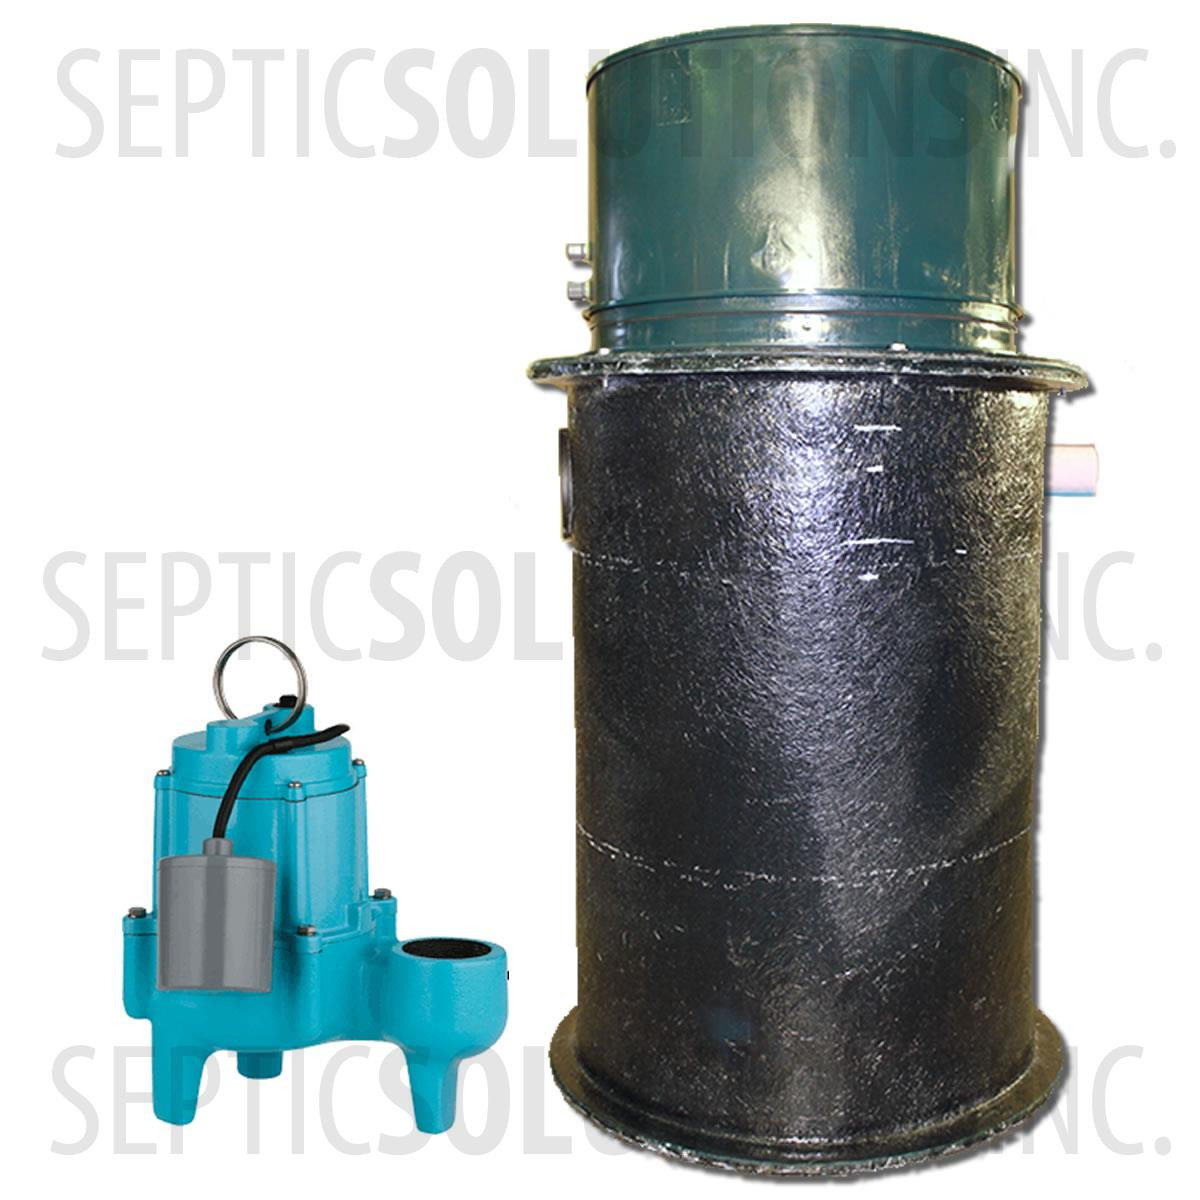 prodigious Sewage Ejector Pump Kit Part - 13: 70 Gallon Simplex Fiberglass Pump Station with 4-10 HP Sewage Ejector Pump